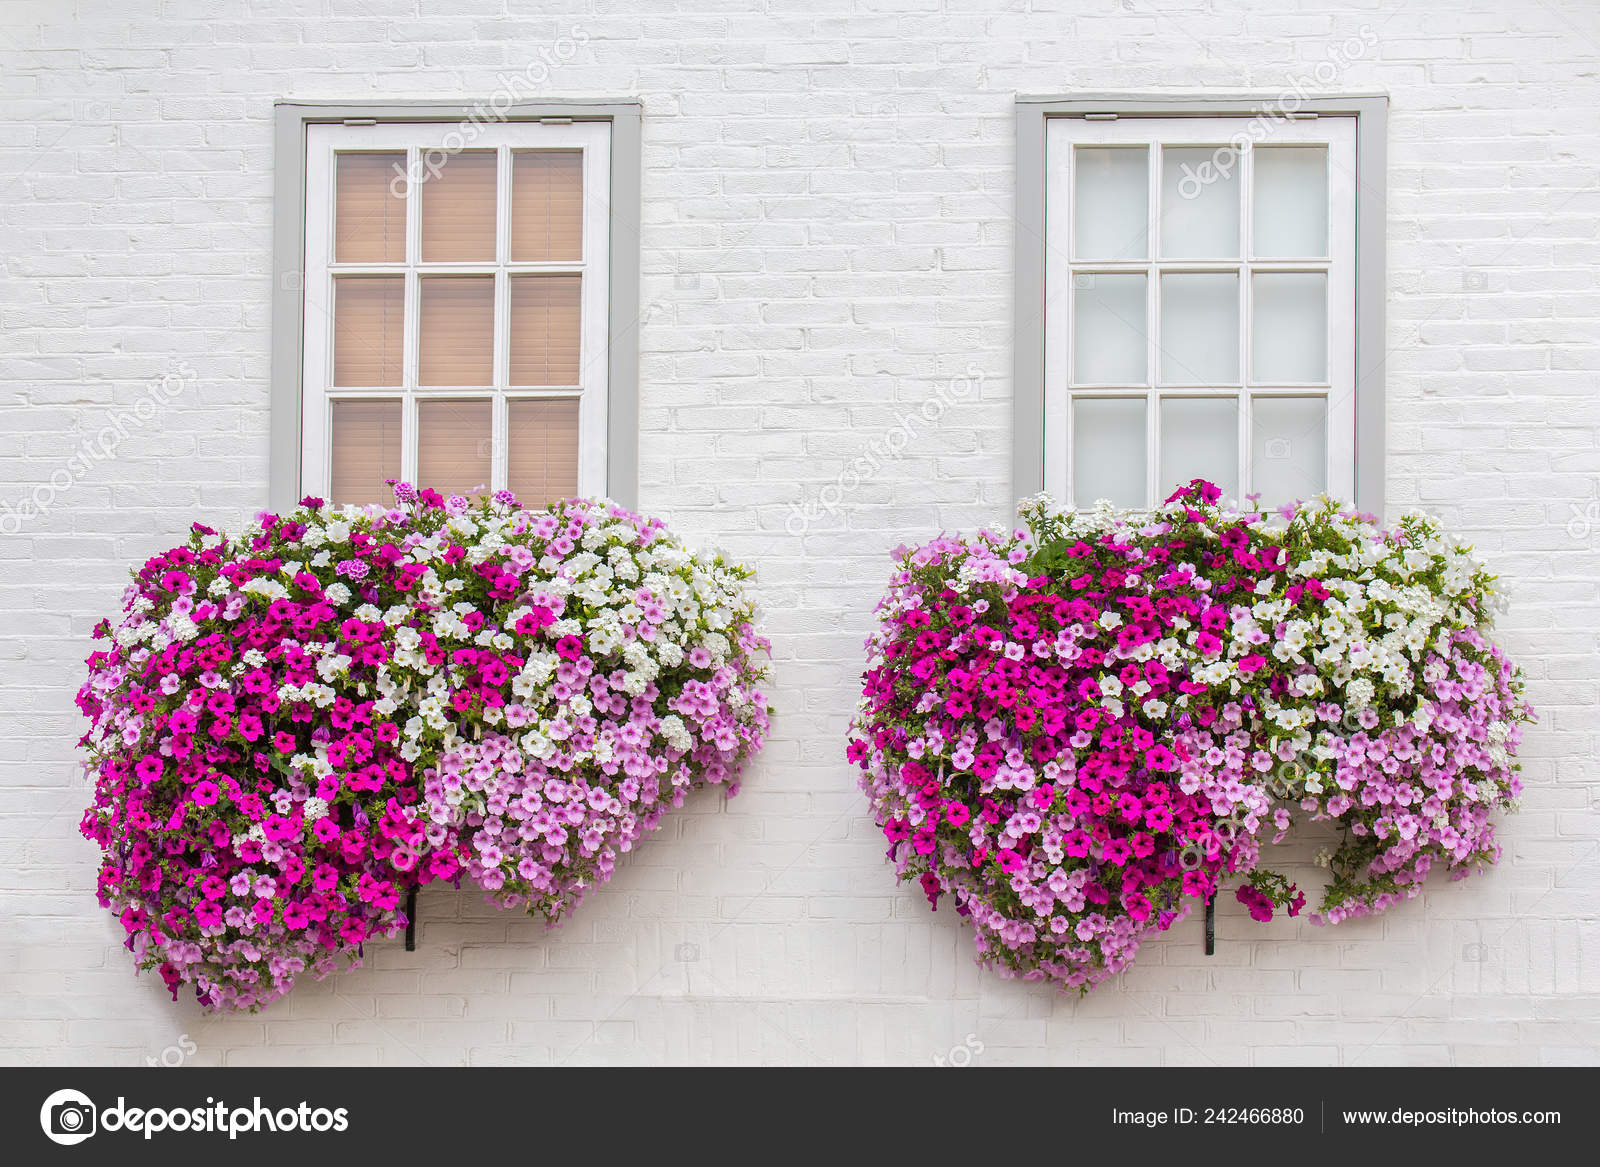 White Brick Wall Windows Flowers Flower Boxes Stock Photo Image By Benschonewille 242466880